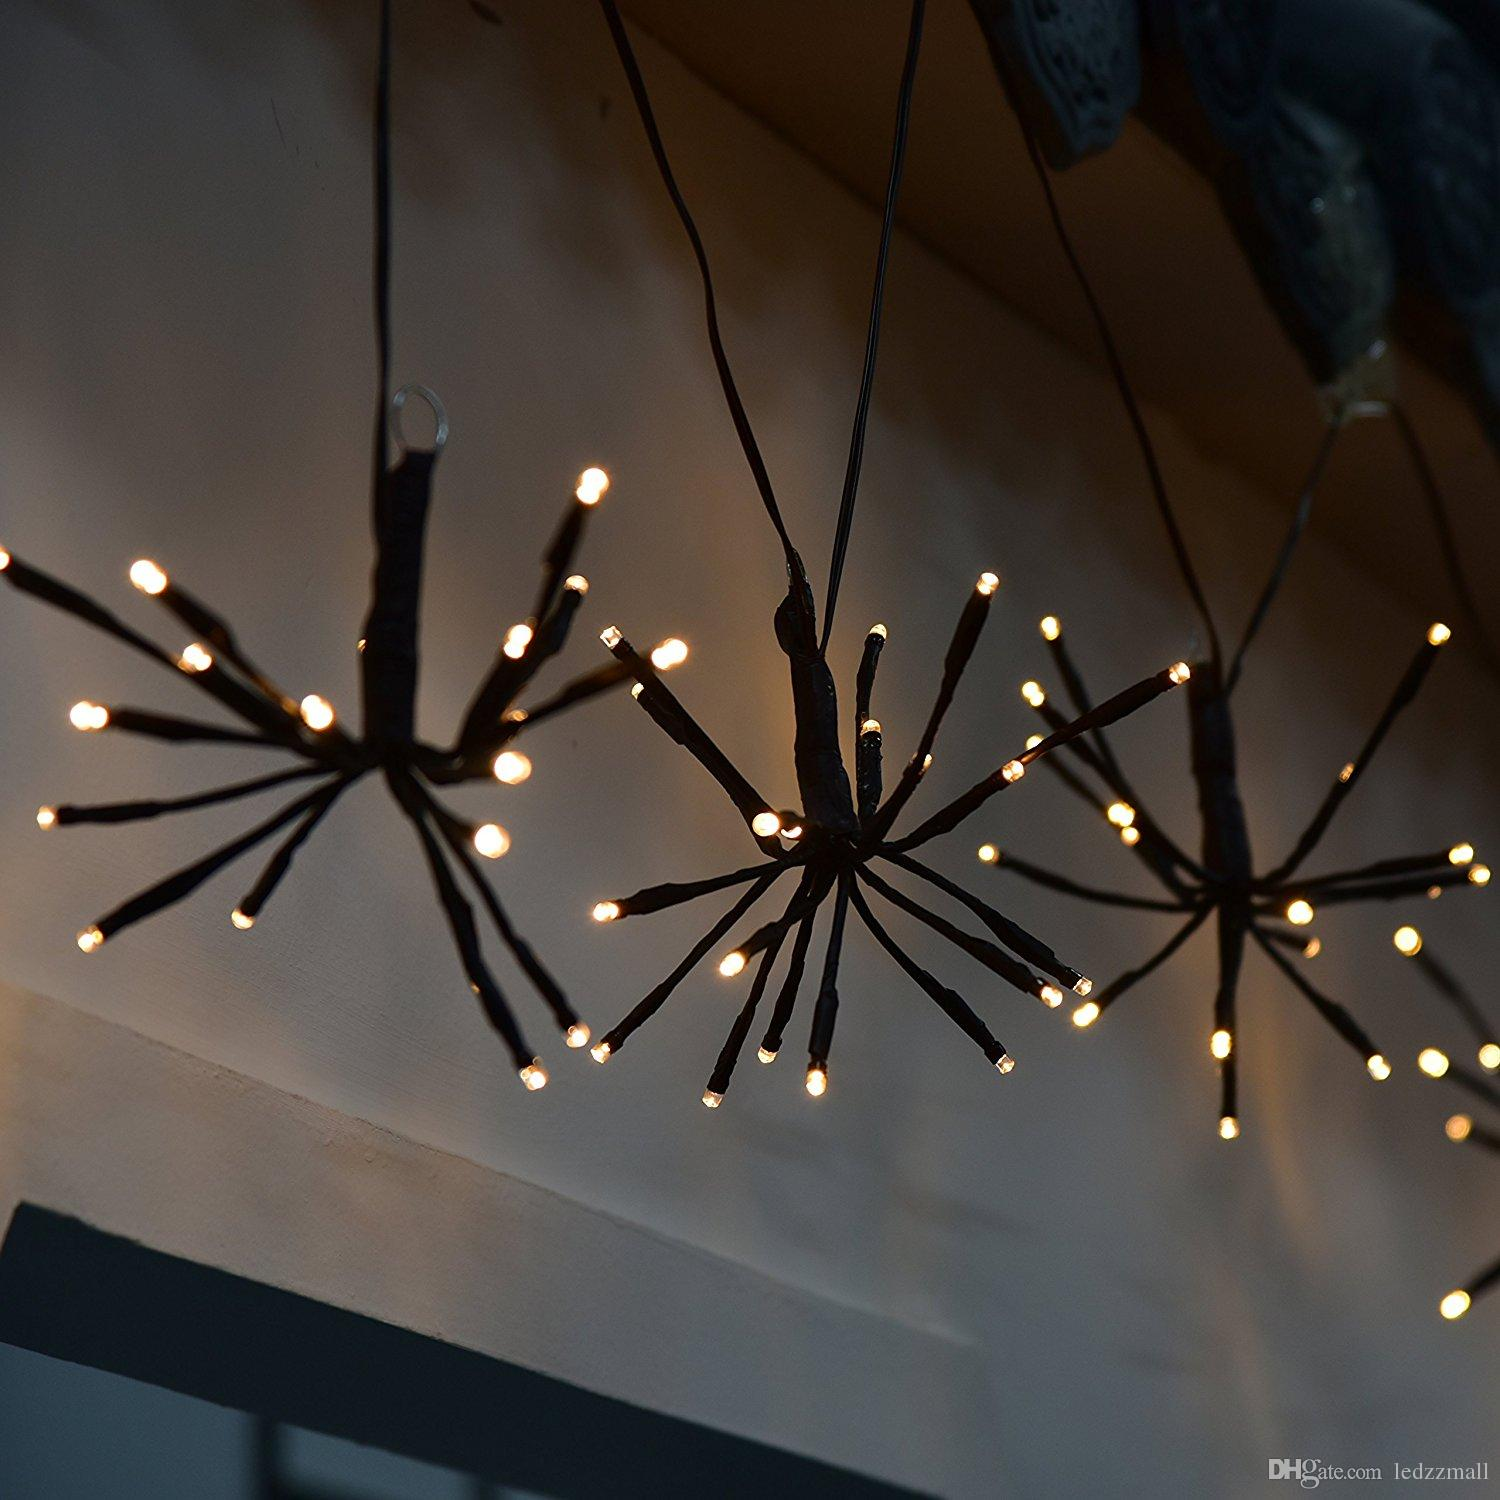 Diy fairy light chandelier chandelier design ideas chandelier project led string lights diy hand made 6 5ft 100 leds waterproof fairy with 8 lighting modes mozeypictures Choice Image